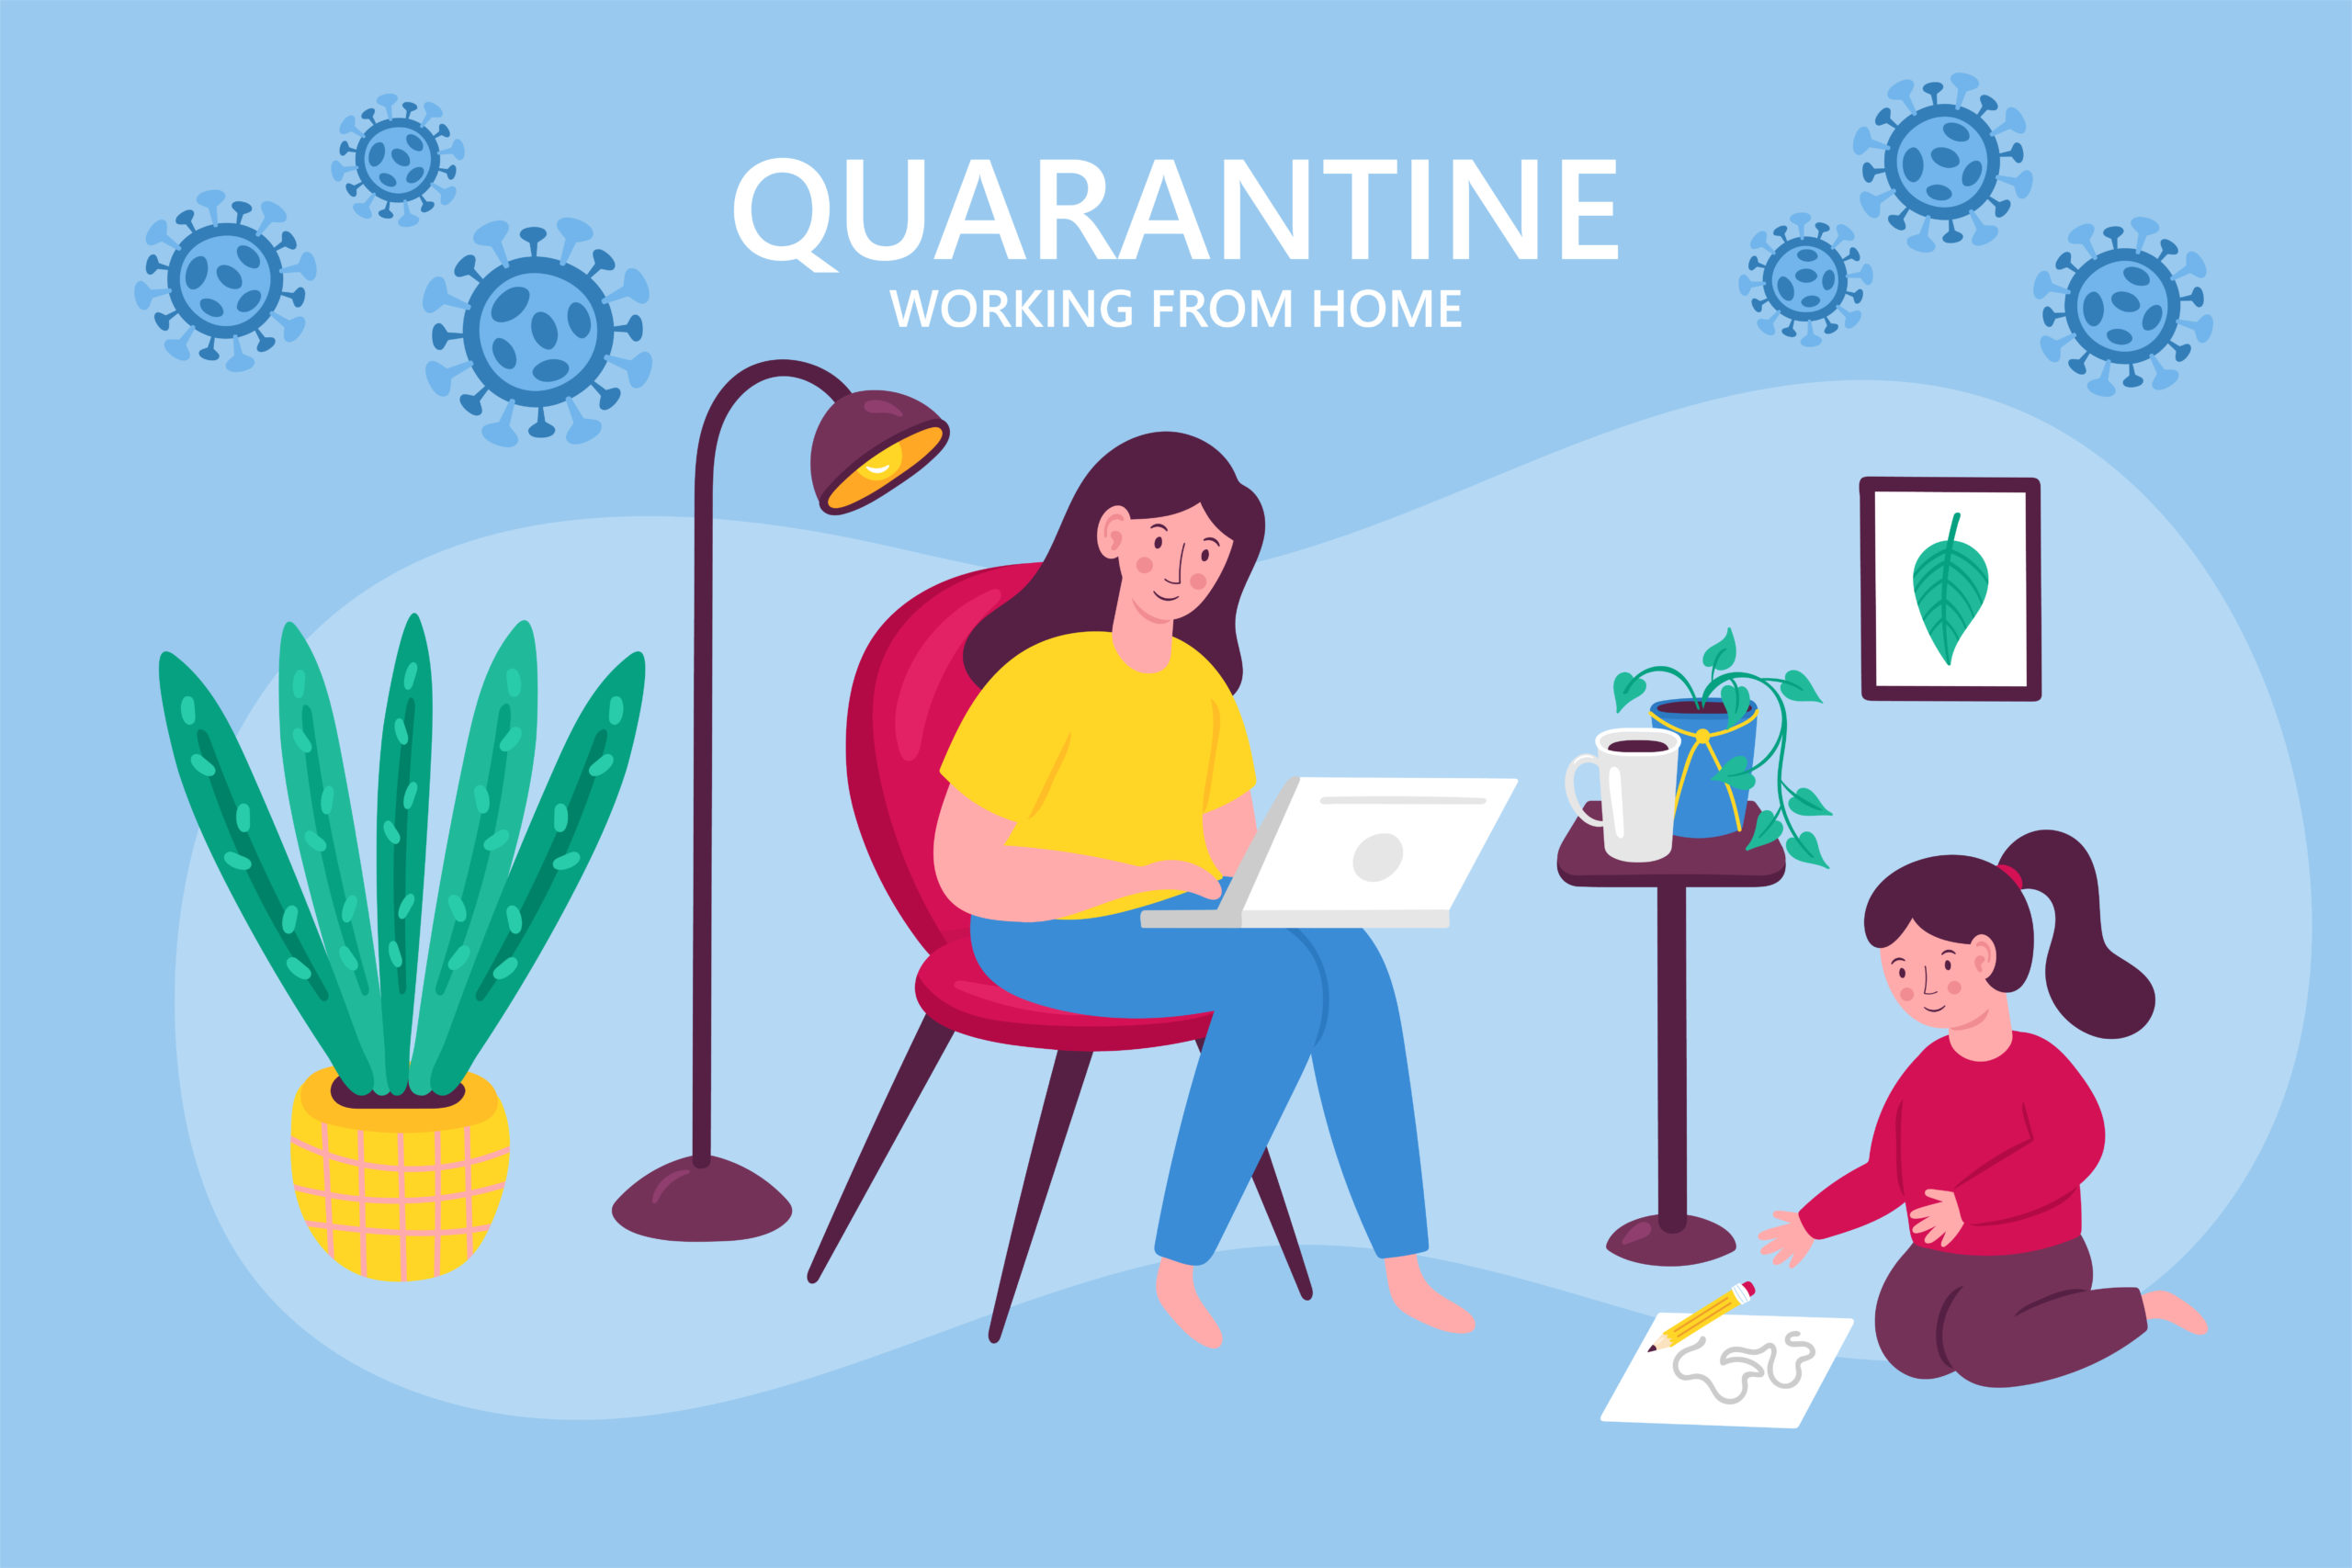 The Coronavirus Diaries - 28th April 2020. Coronavirus quarantine concept. Working from home. Woman with child sitting on chair and working on laptop. Flat cartoon vector illustration